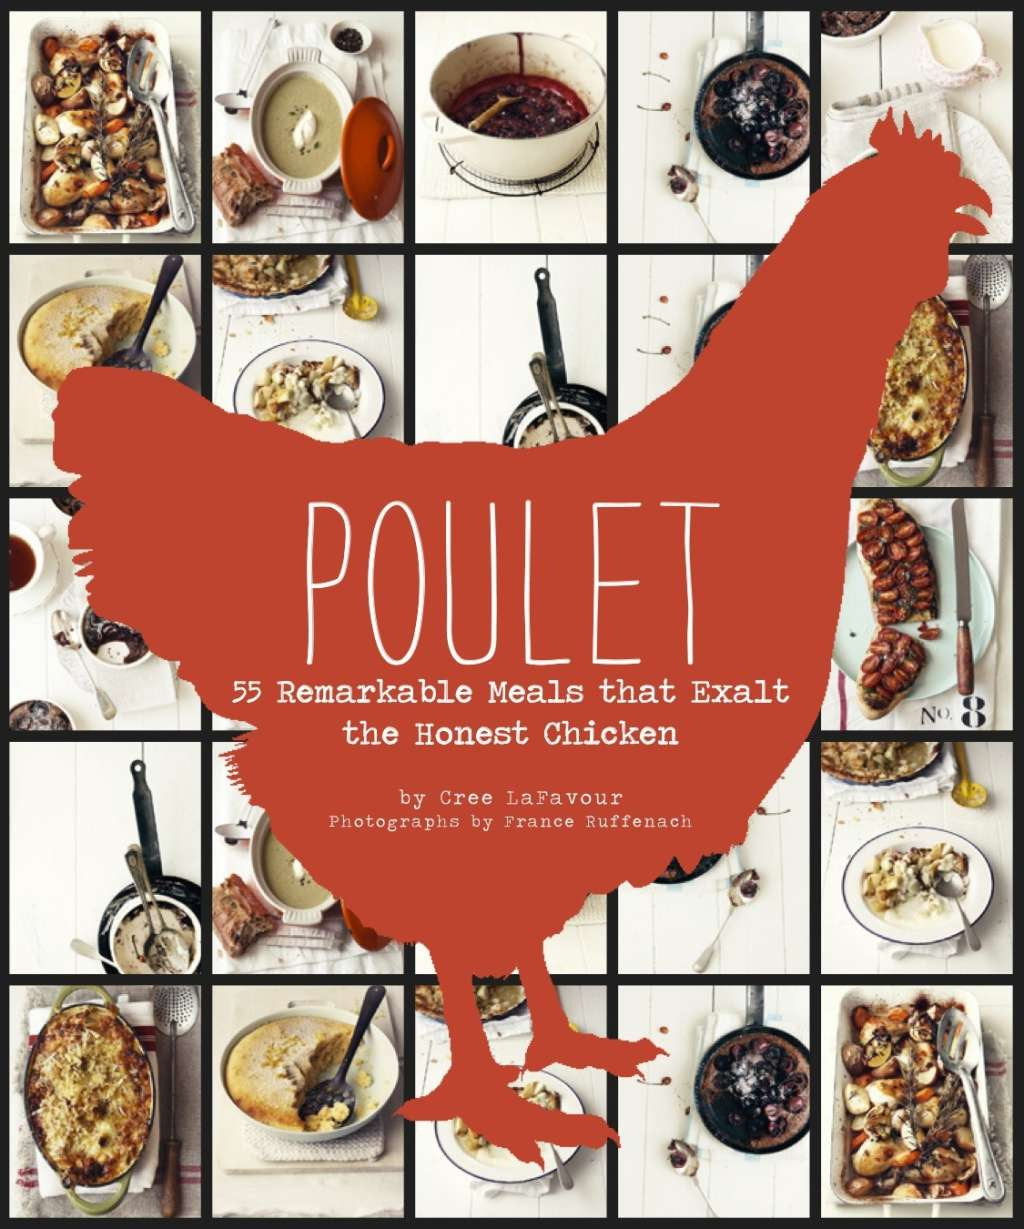 Chronicle Rental Finder: Poulet By Cree LeFavour